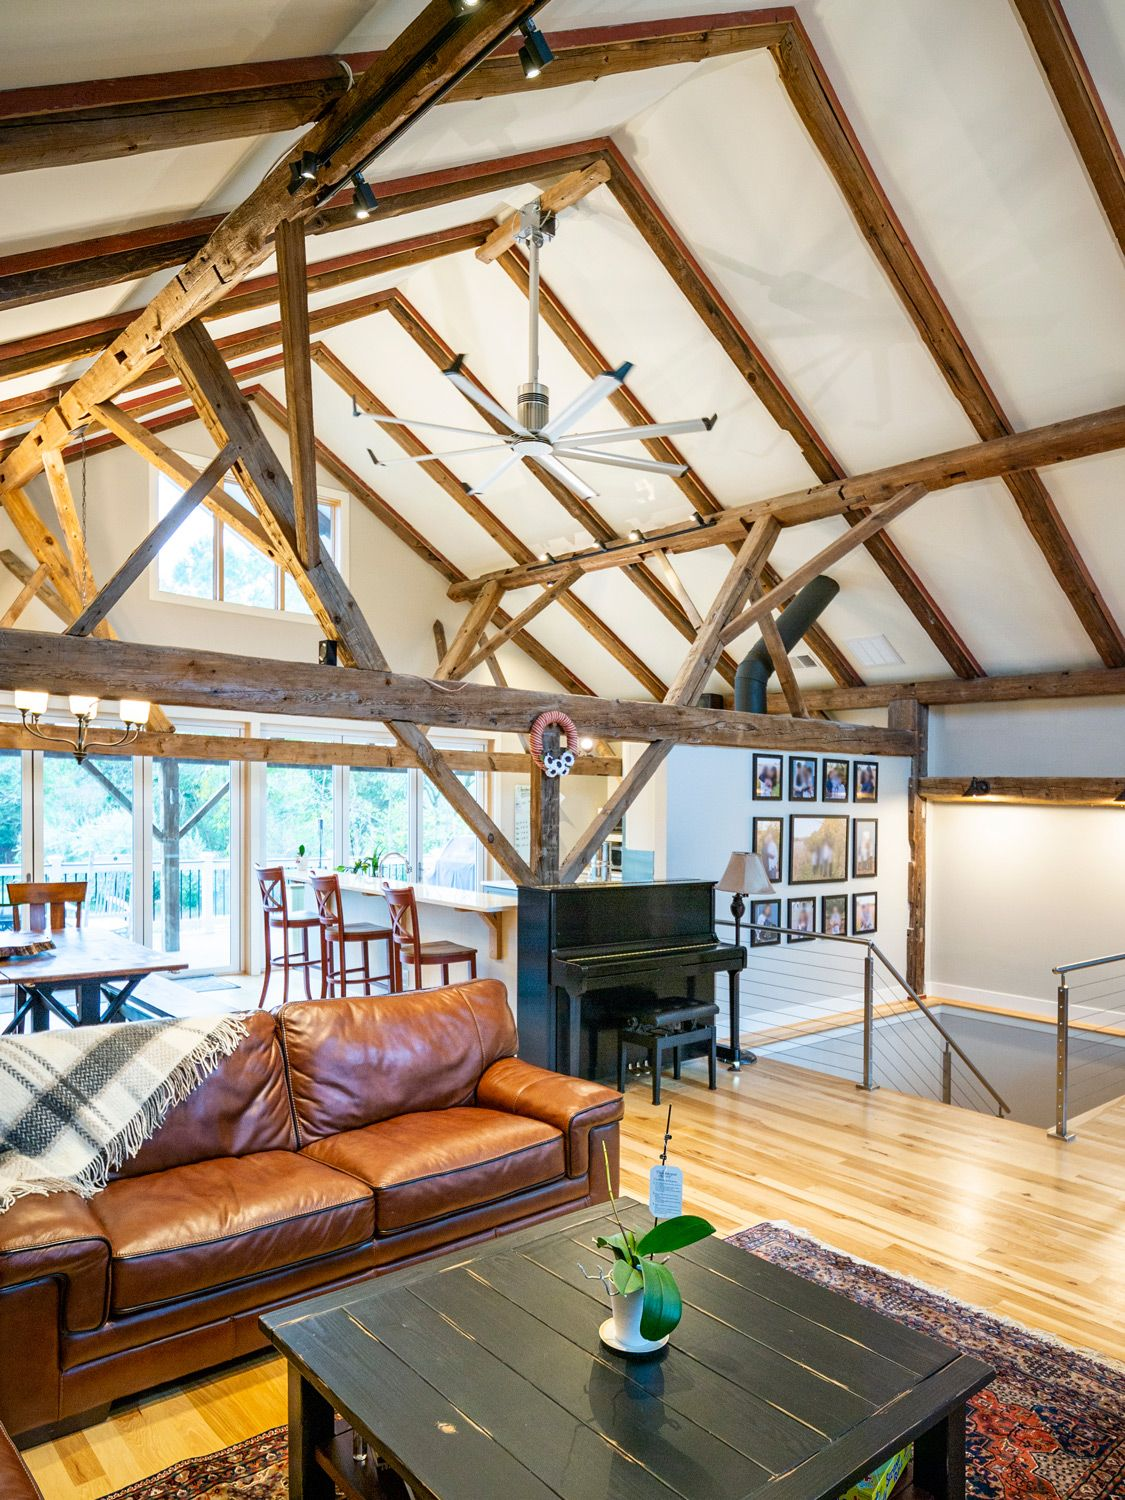 Heritage Restorations | Barn Home • Timber Frame Event Center • Historical Buildings #eventingbarn